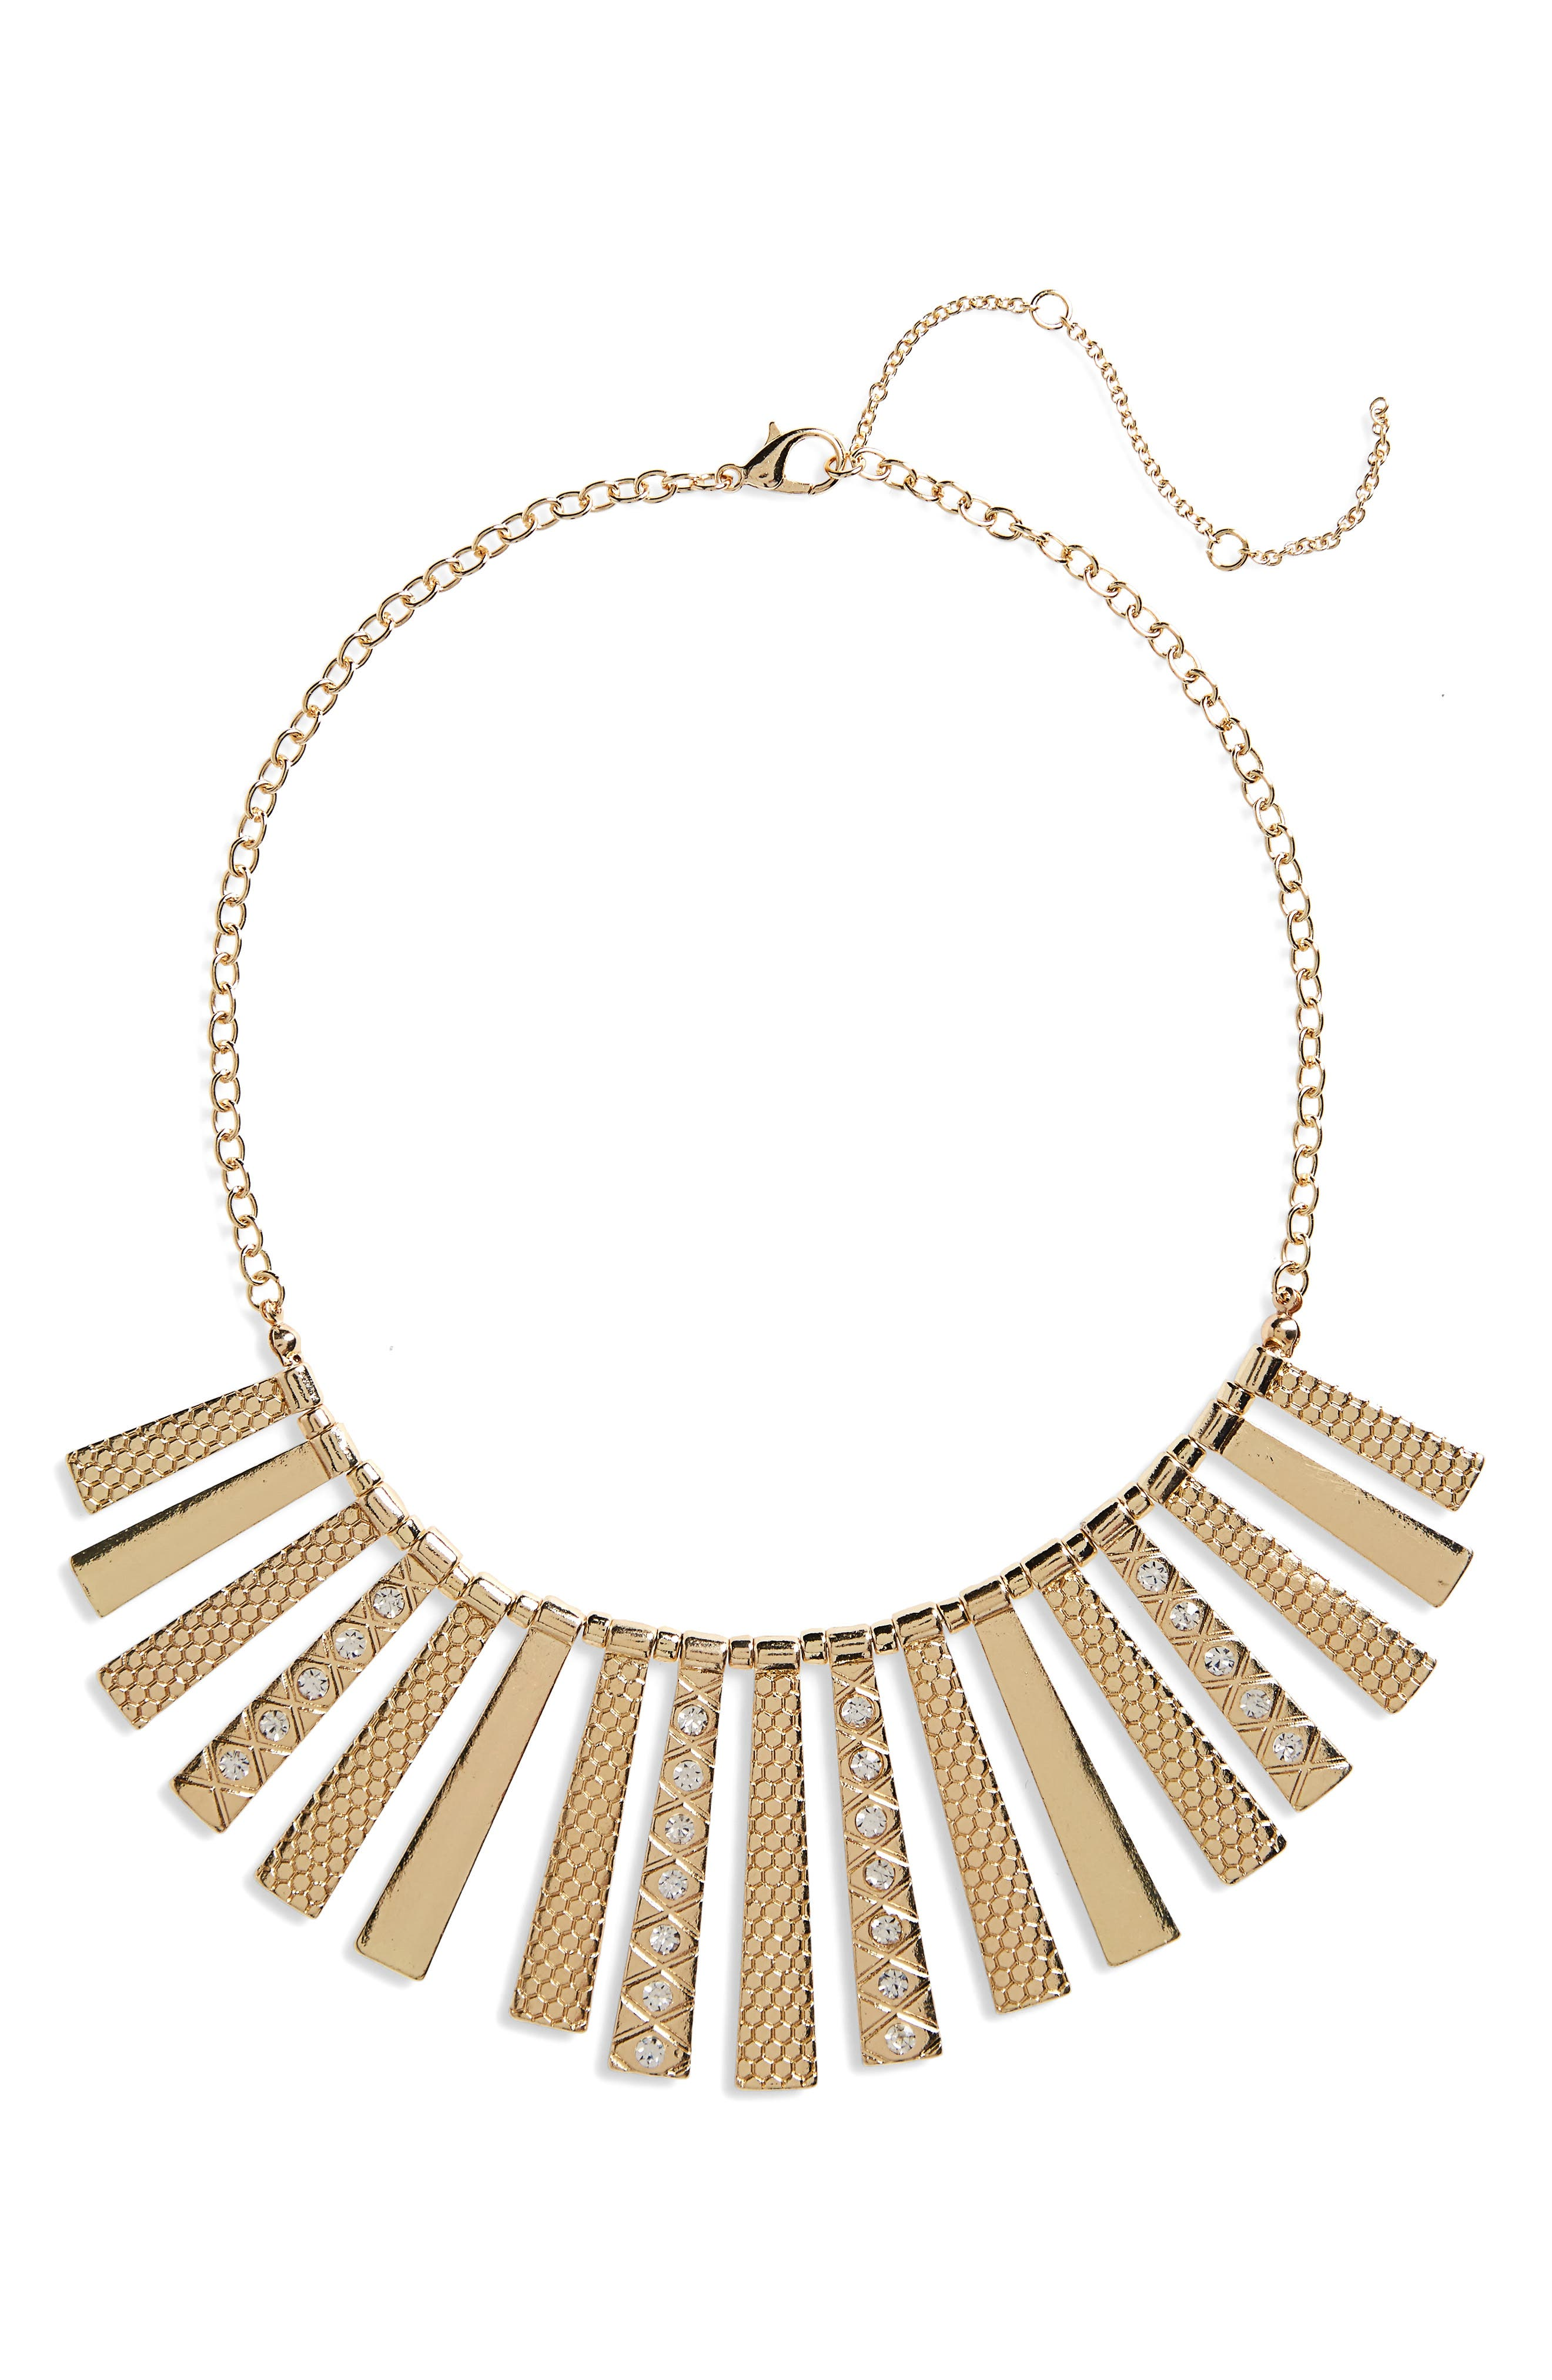 Textured Statement Necklace,                         Main,                         color, Gold/ Crystal